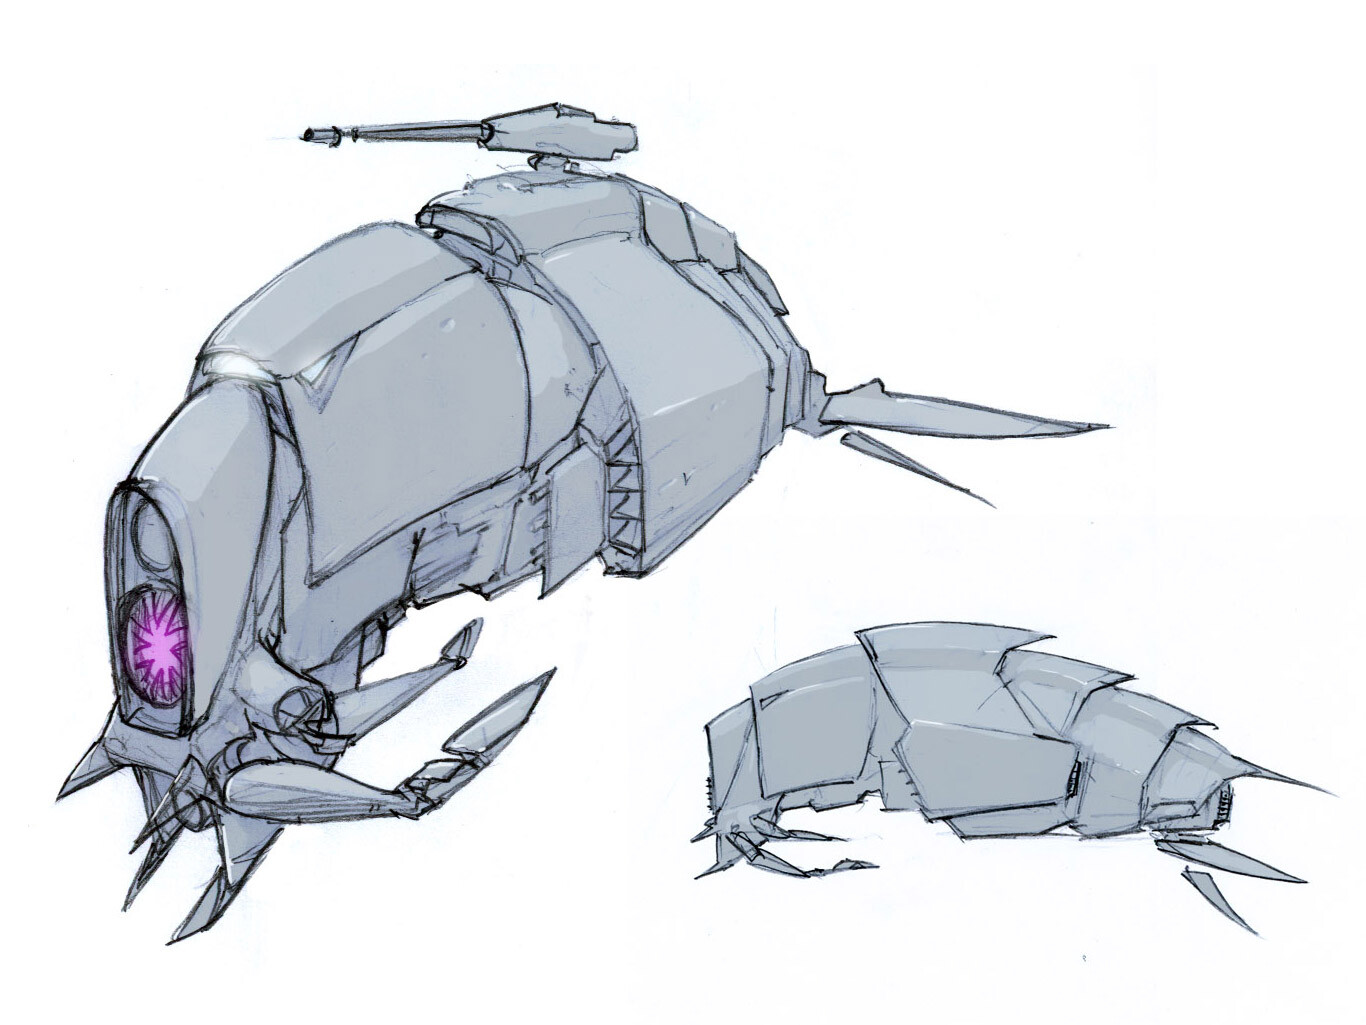 Concepts: boarding vessel